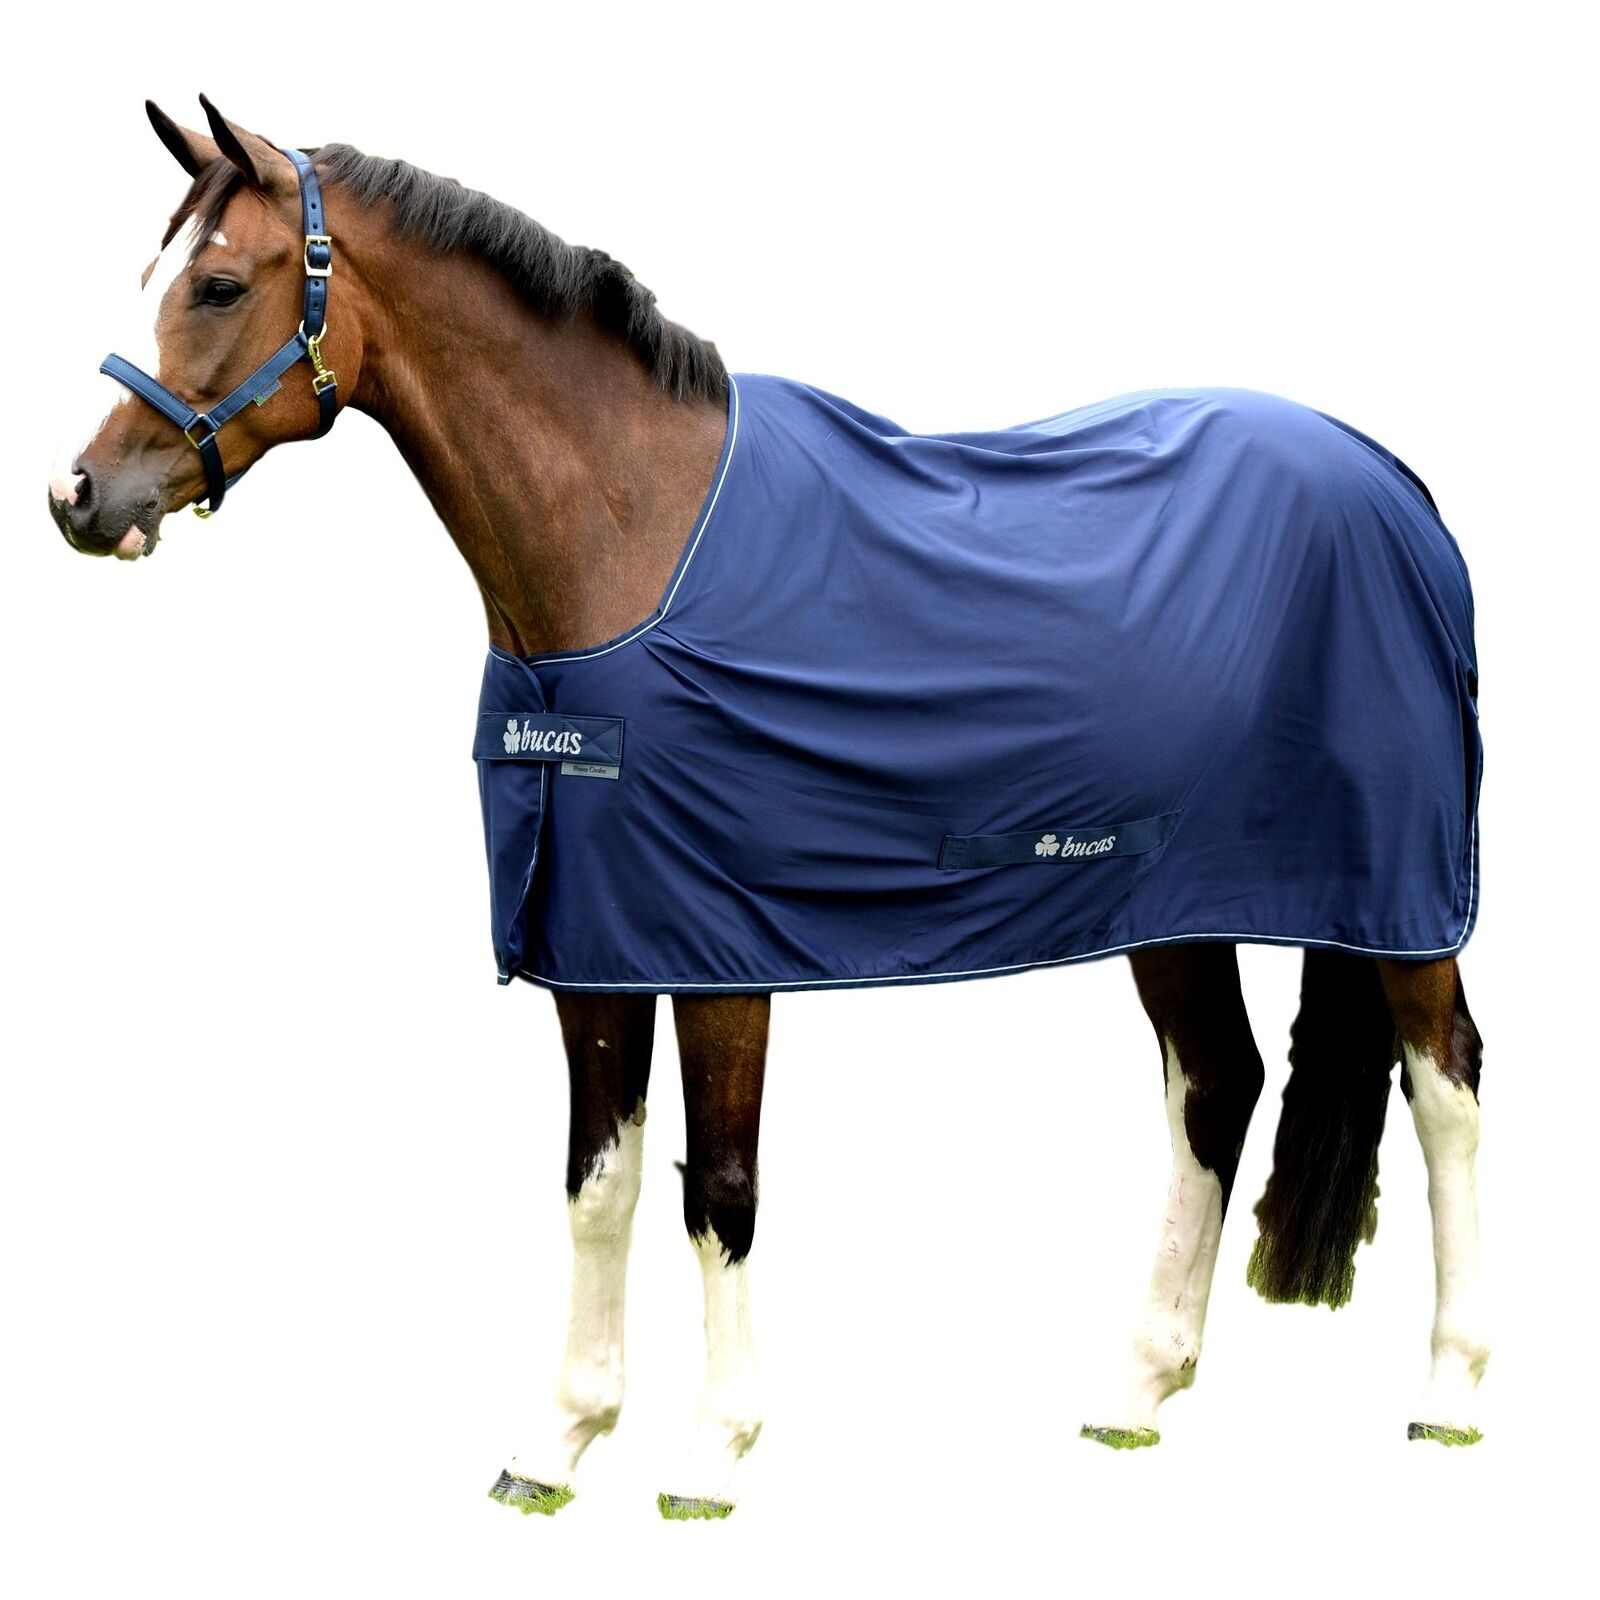 Bucas Shamrock energia Cooler Sheet with Two Layers of StayDry Fabric